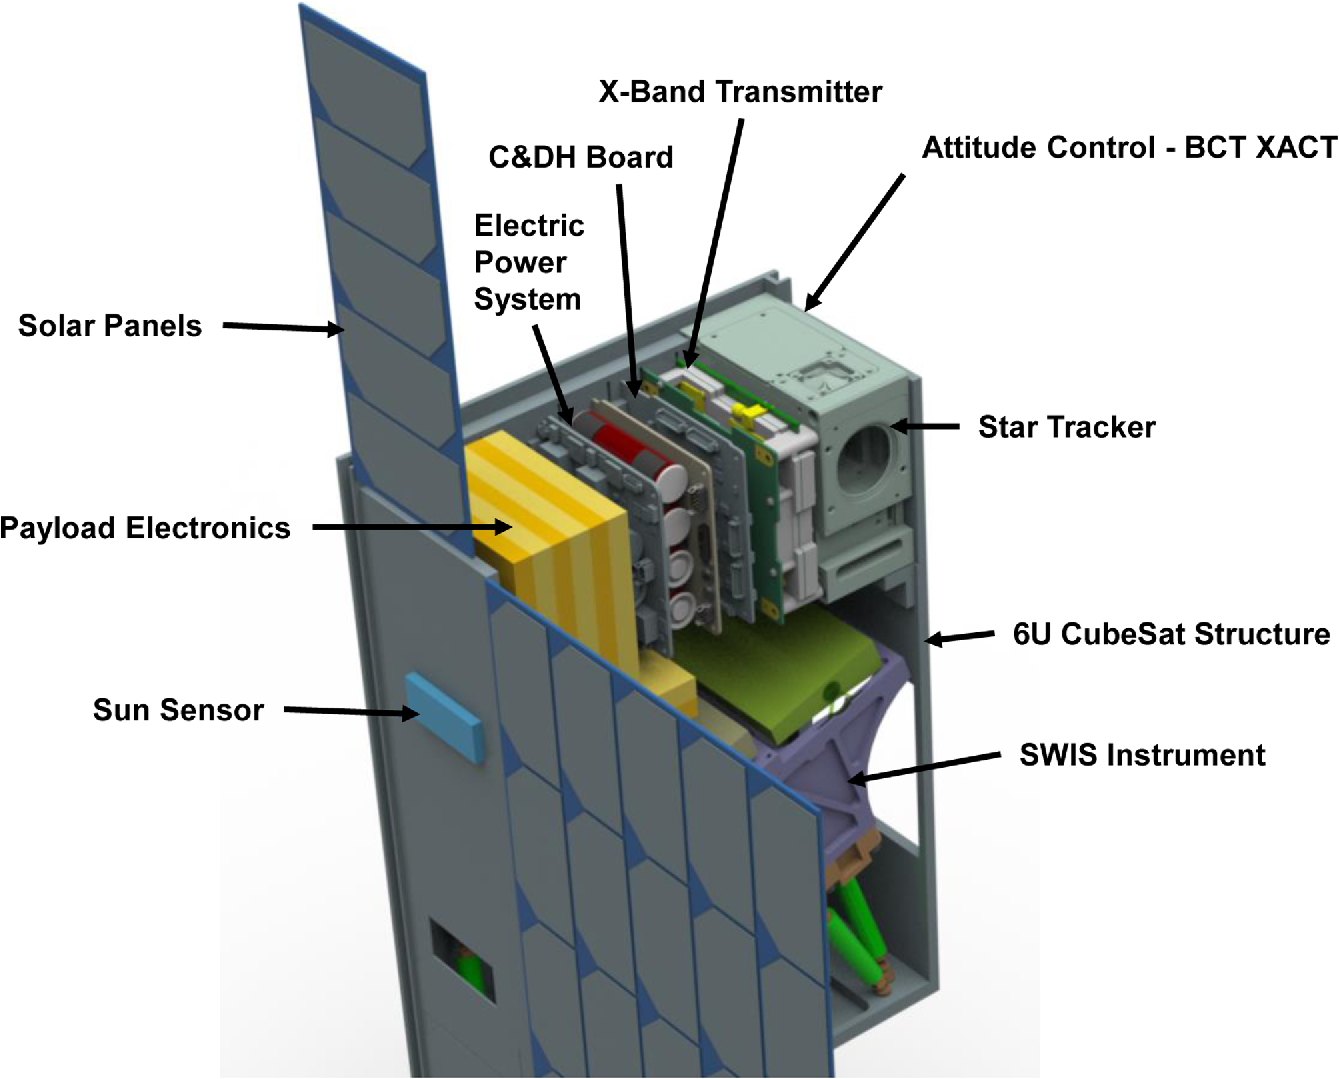 Snow And Water Imaging Spectrometer Mission Instrument Concepts Of Electrical Panels Understanding The Relationship Star Delta Swis Cubesat Configuration With Commercial Spacecraft Components Boards That Satisfy Requirements